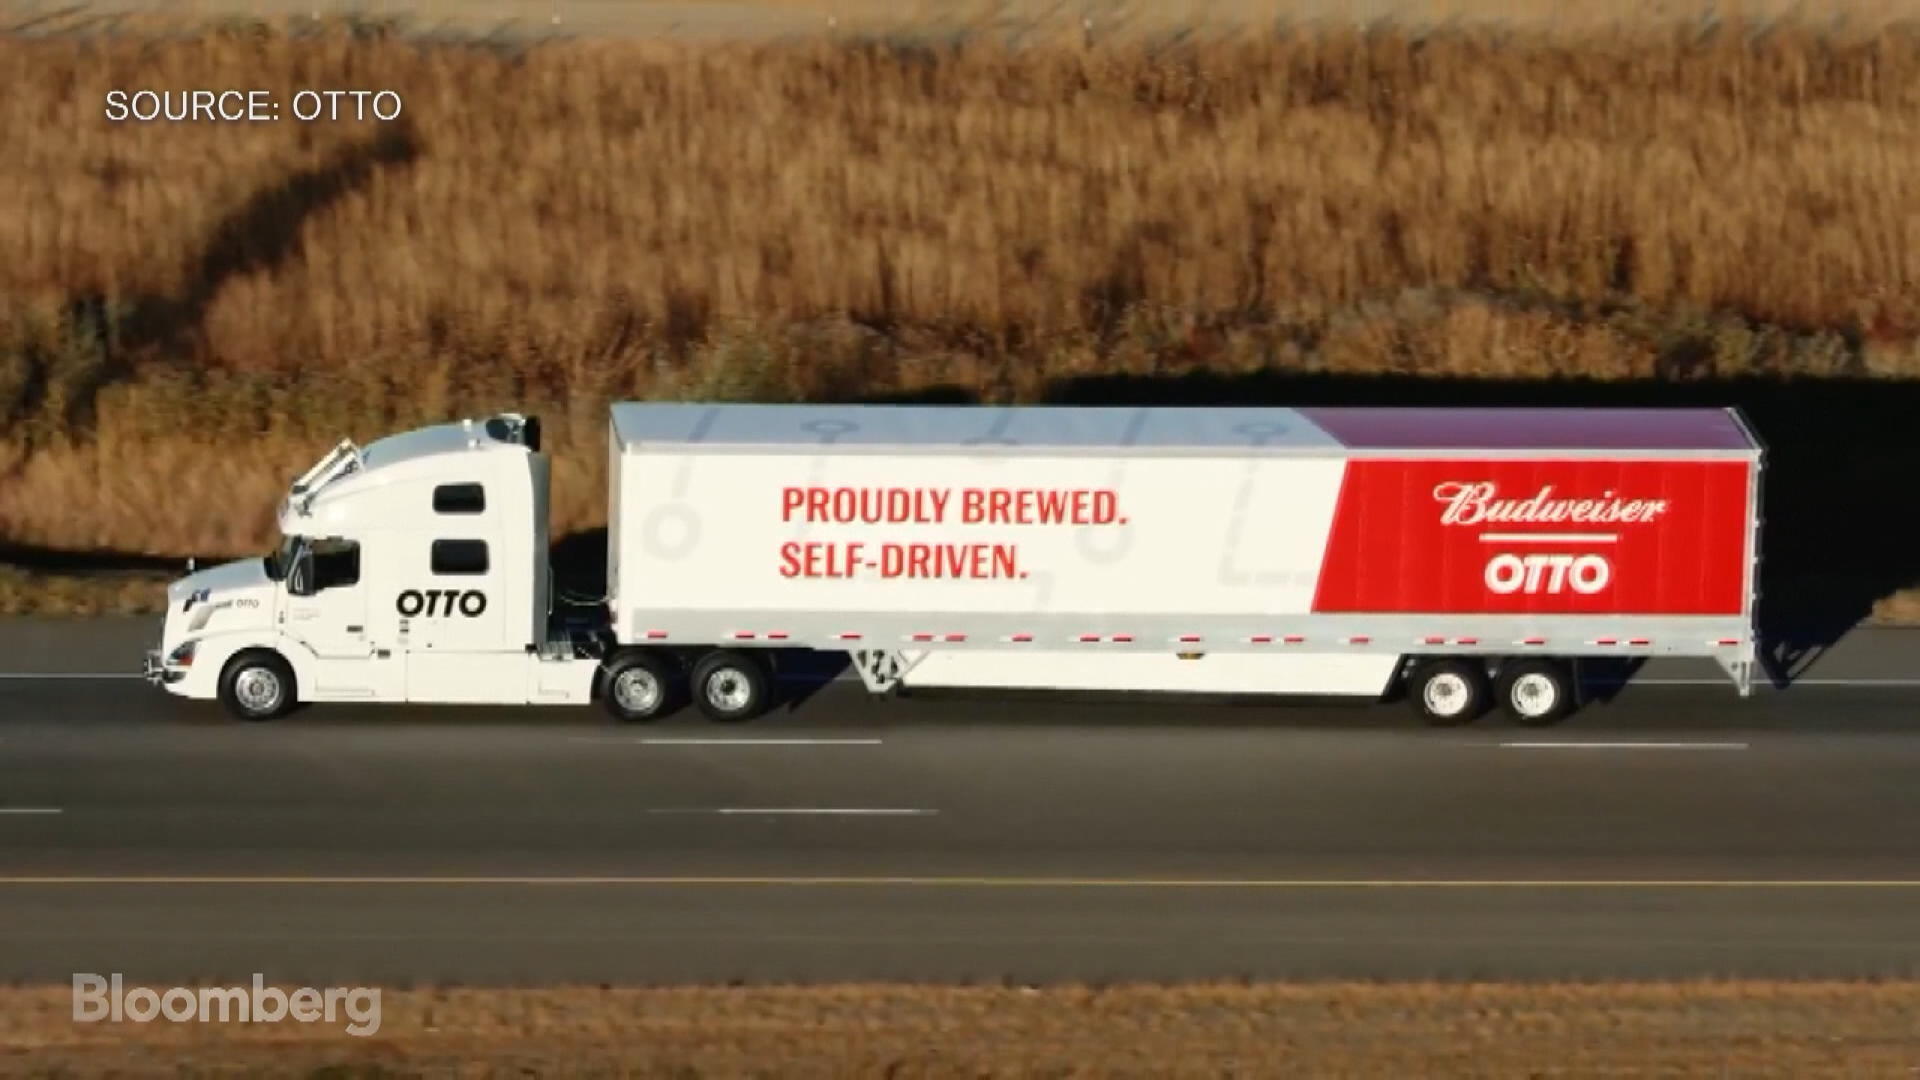 uber self driving truck packed with budweiser makes first delivery in colorado bloomberg